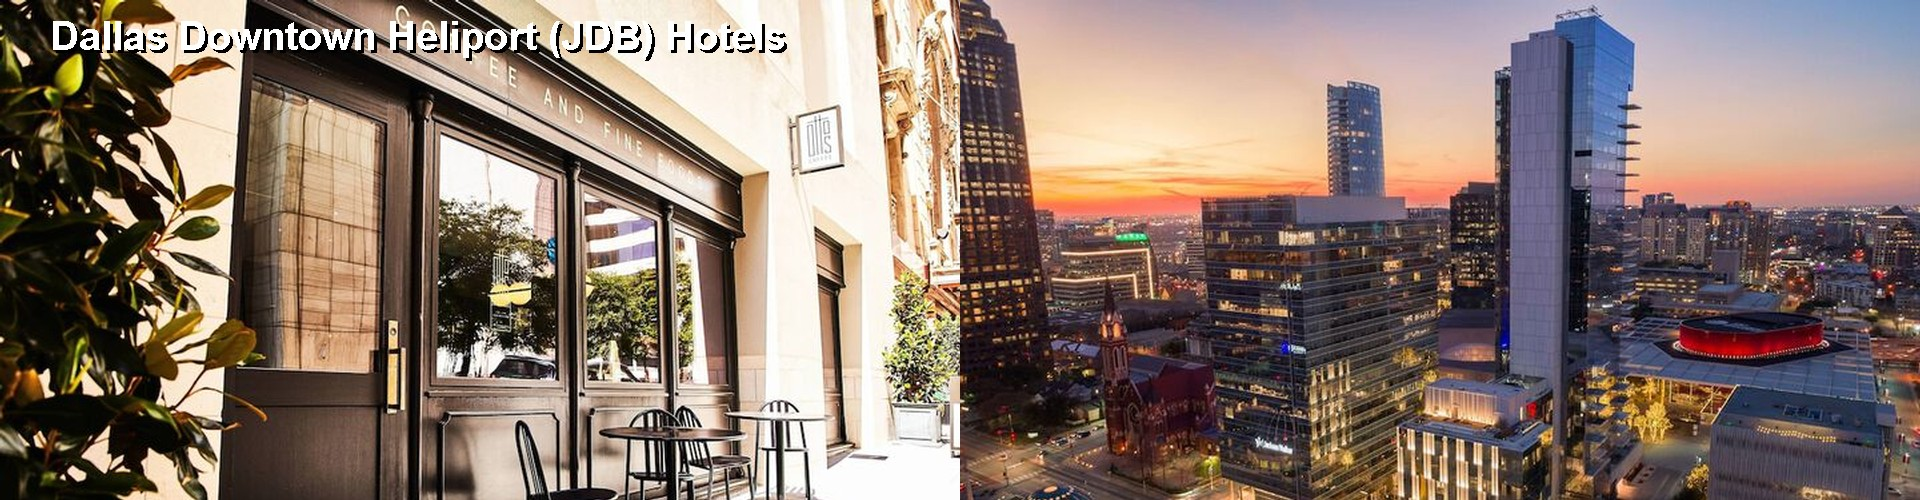 5 Best Hotels near Dallas Downtown Heliport (JDB)